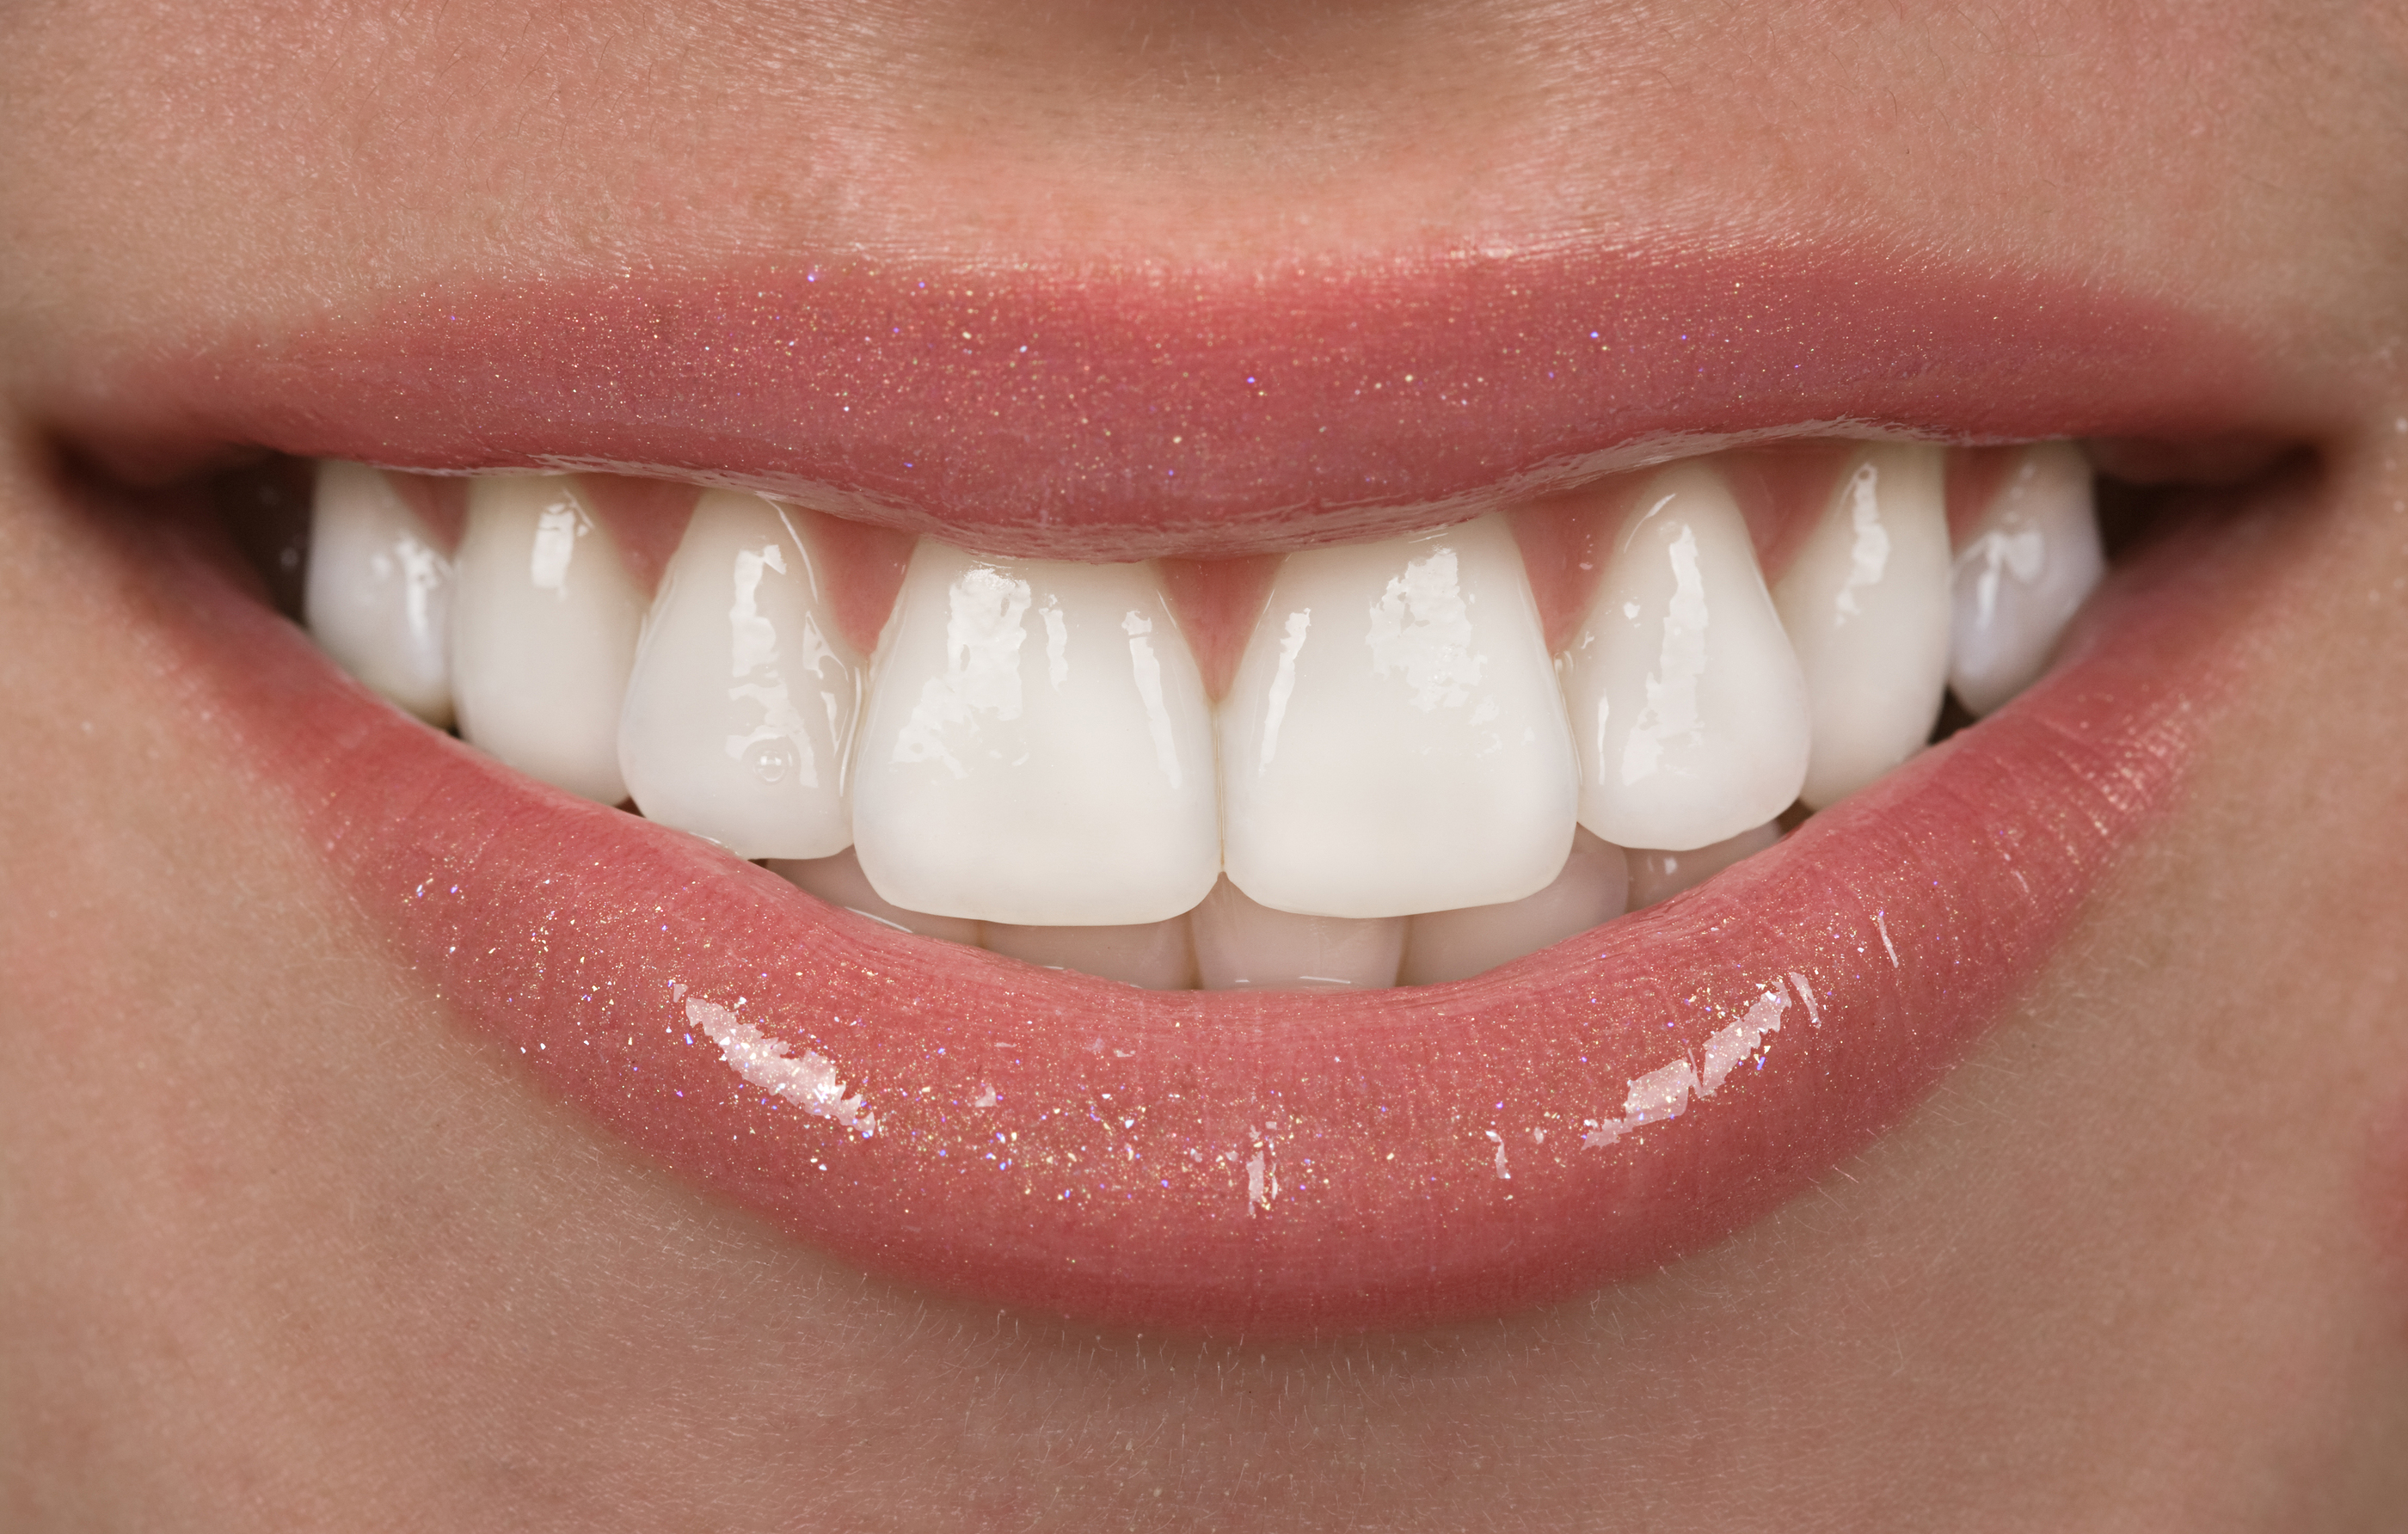 Porcelain Veneers or Invisalign®: Which is Right for You?